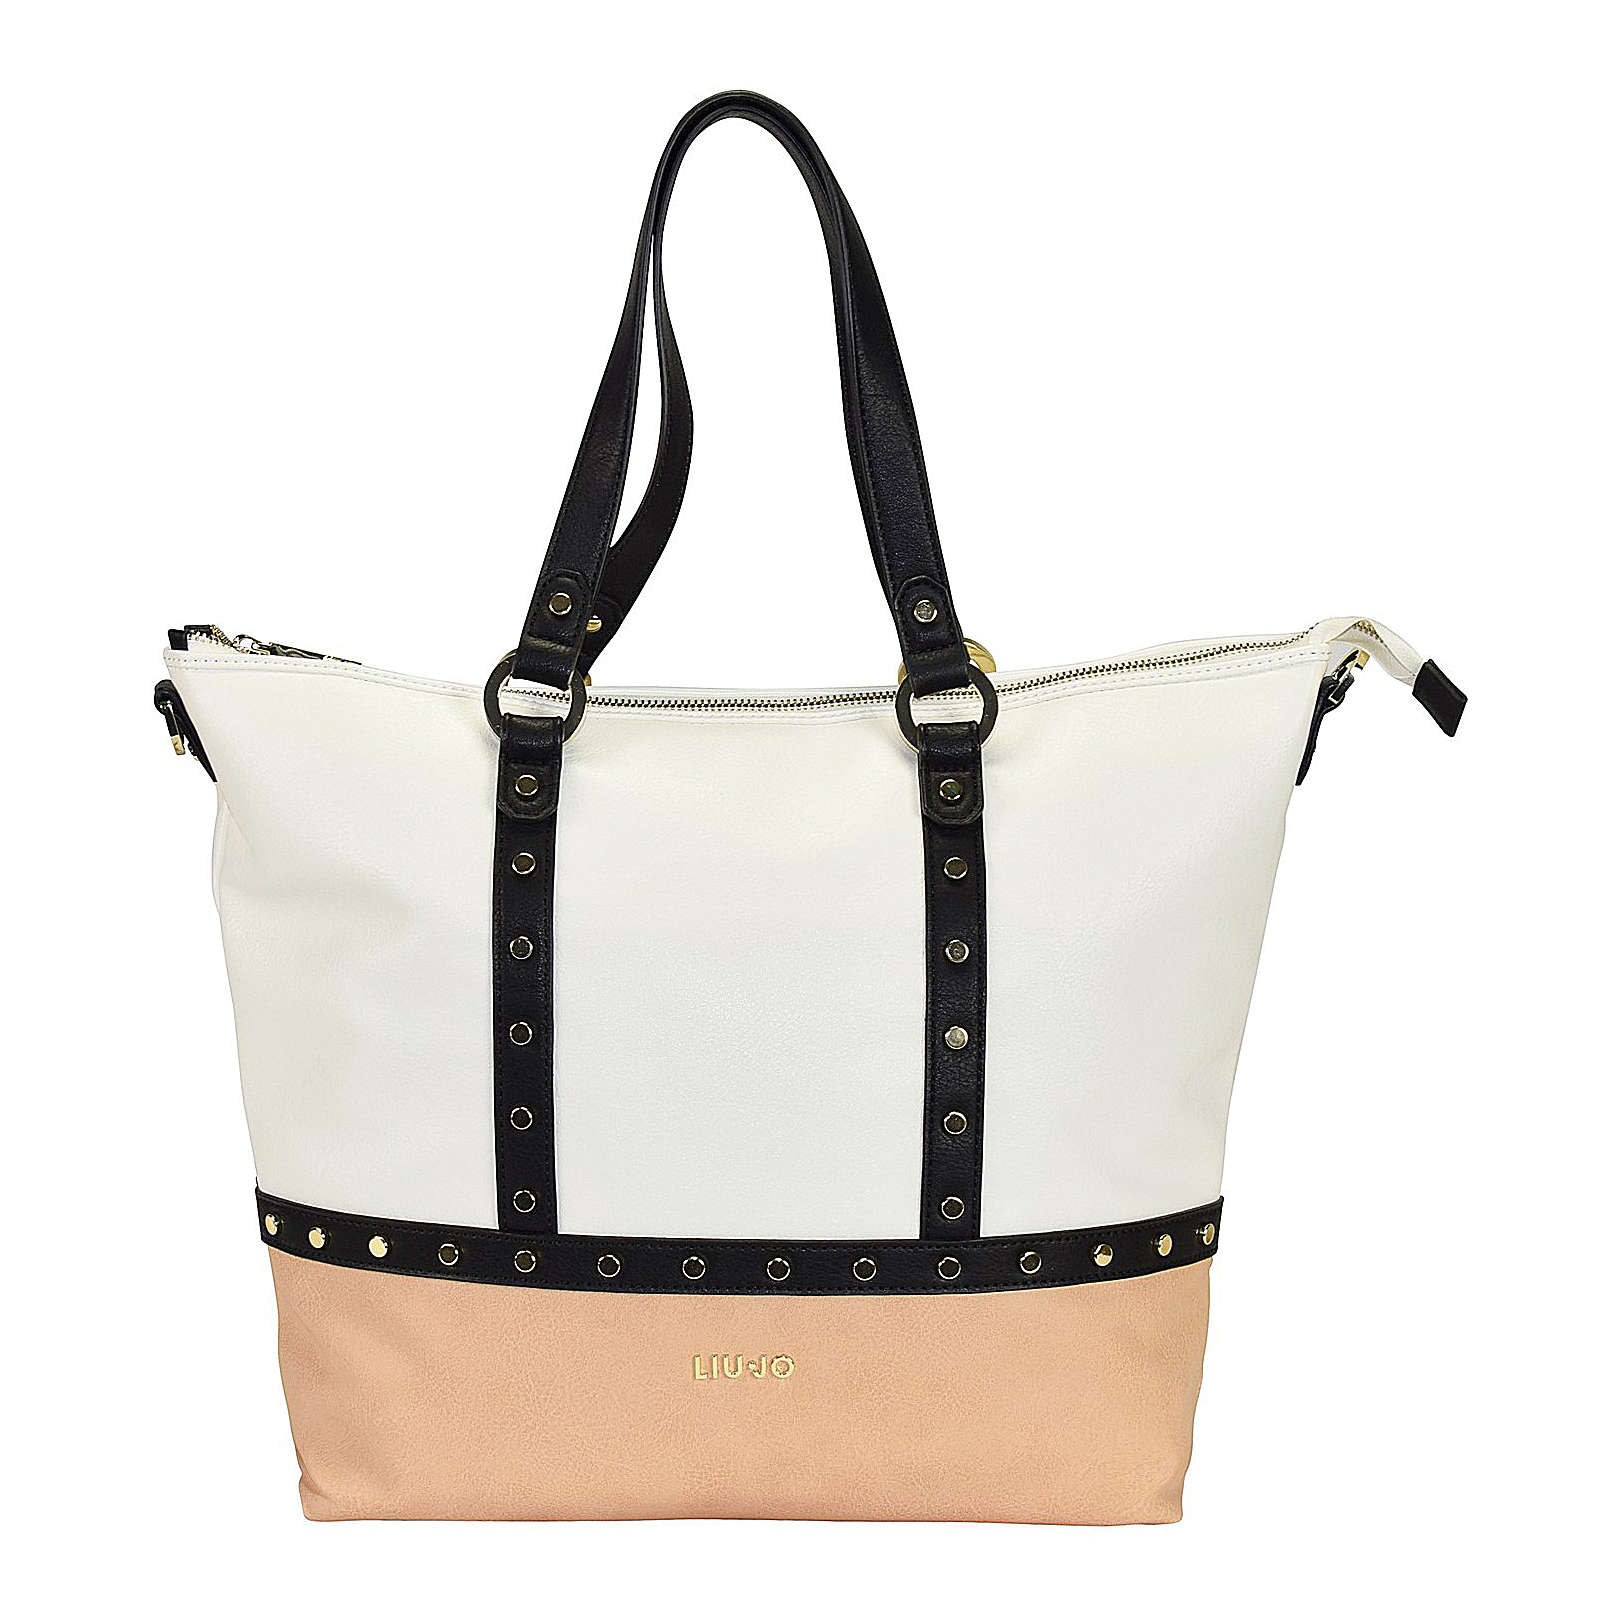 LIU JO Shopping Orizzontal Shopper Tasche 32 cm...